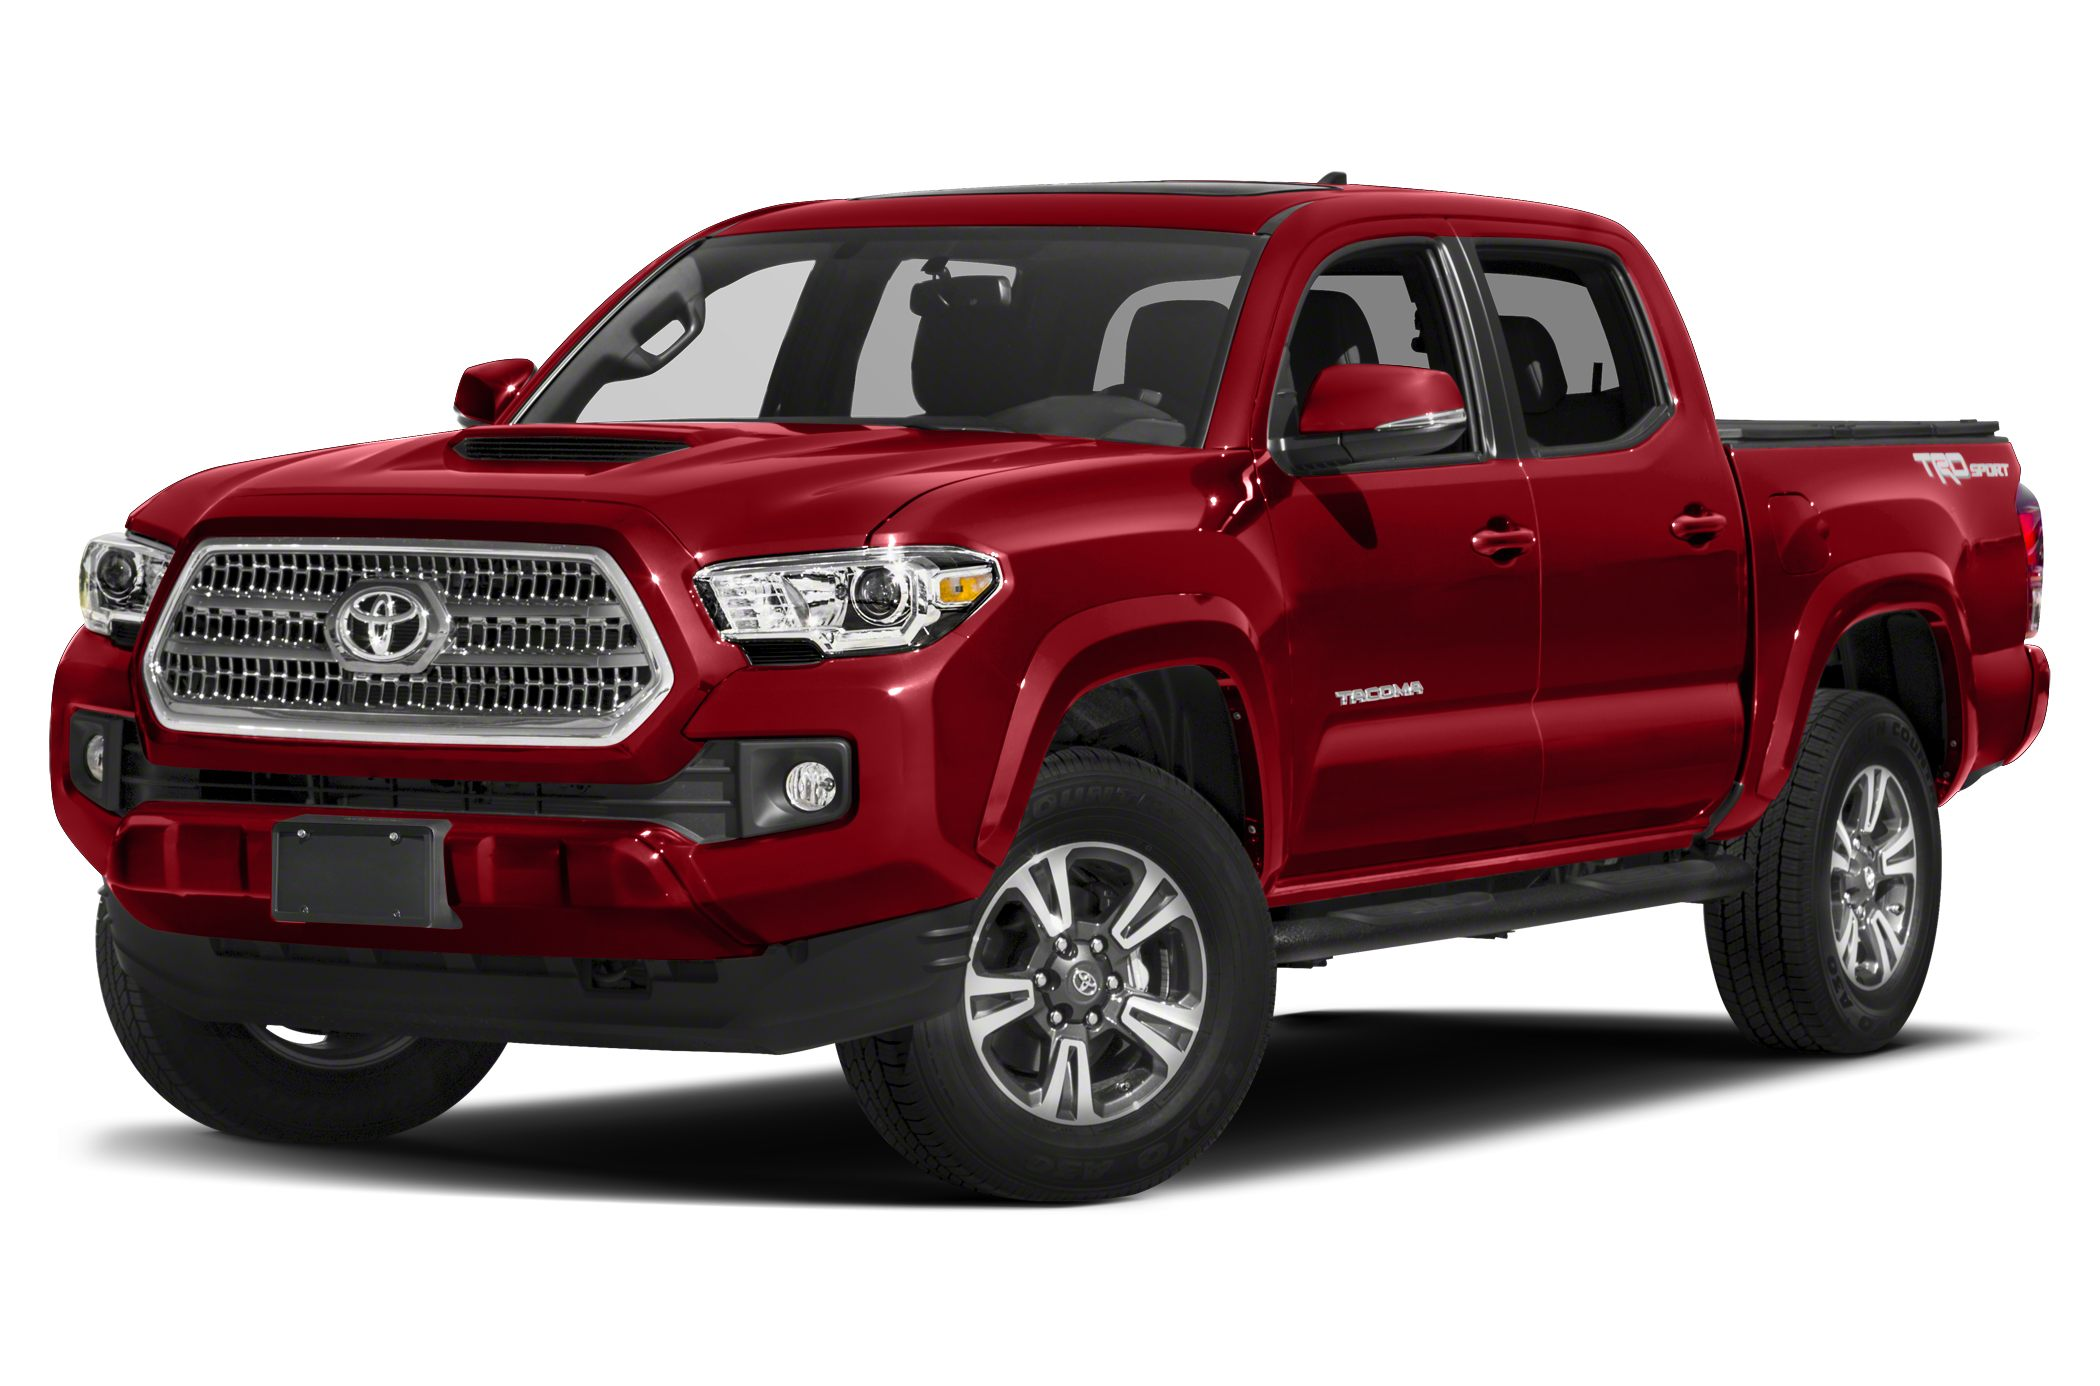 2017 Toyota Tacoma TRD Sport V6 4x4 Double Cab 140.6 in. WB